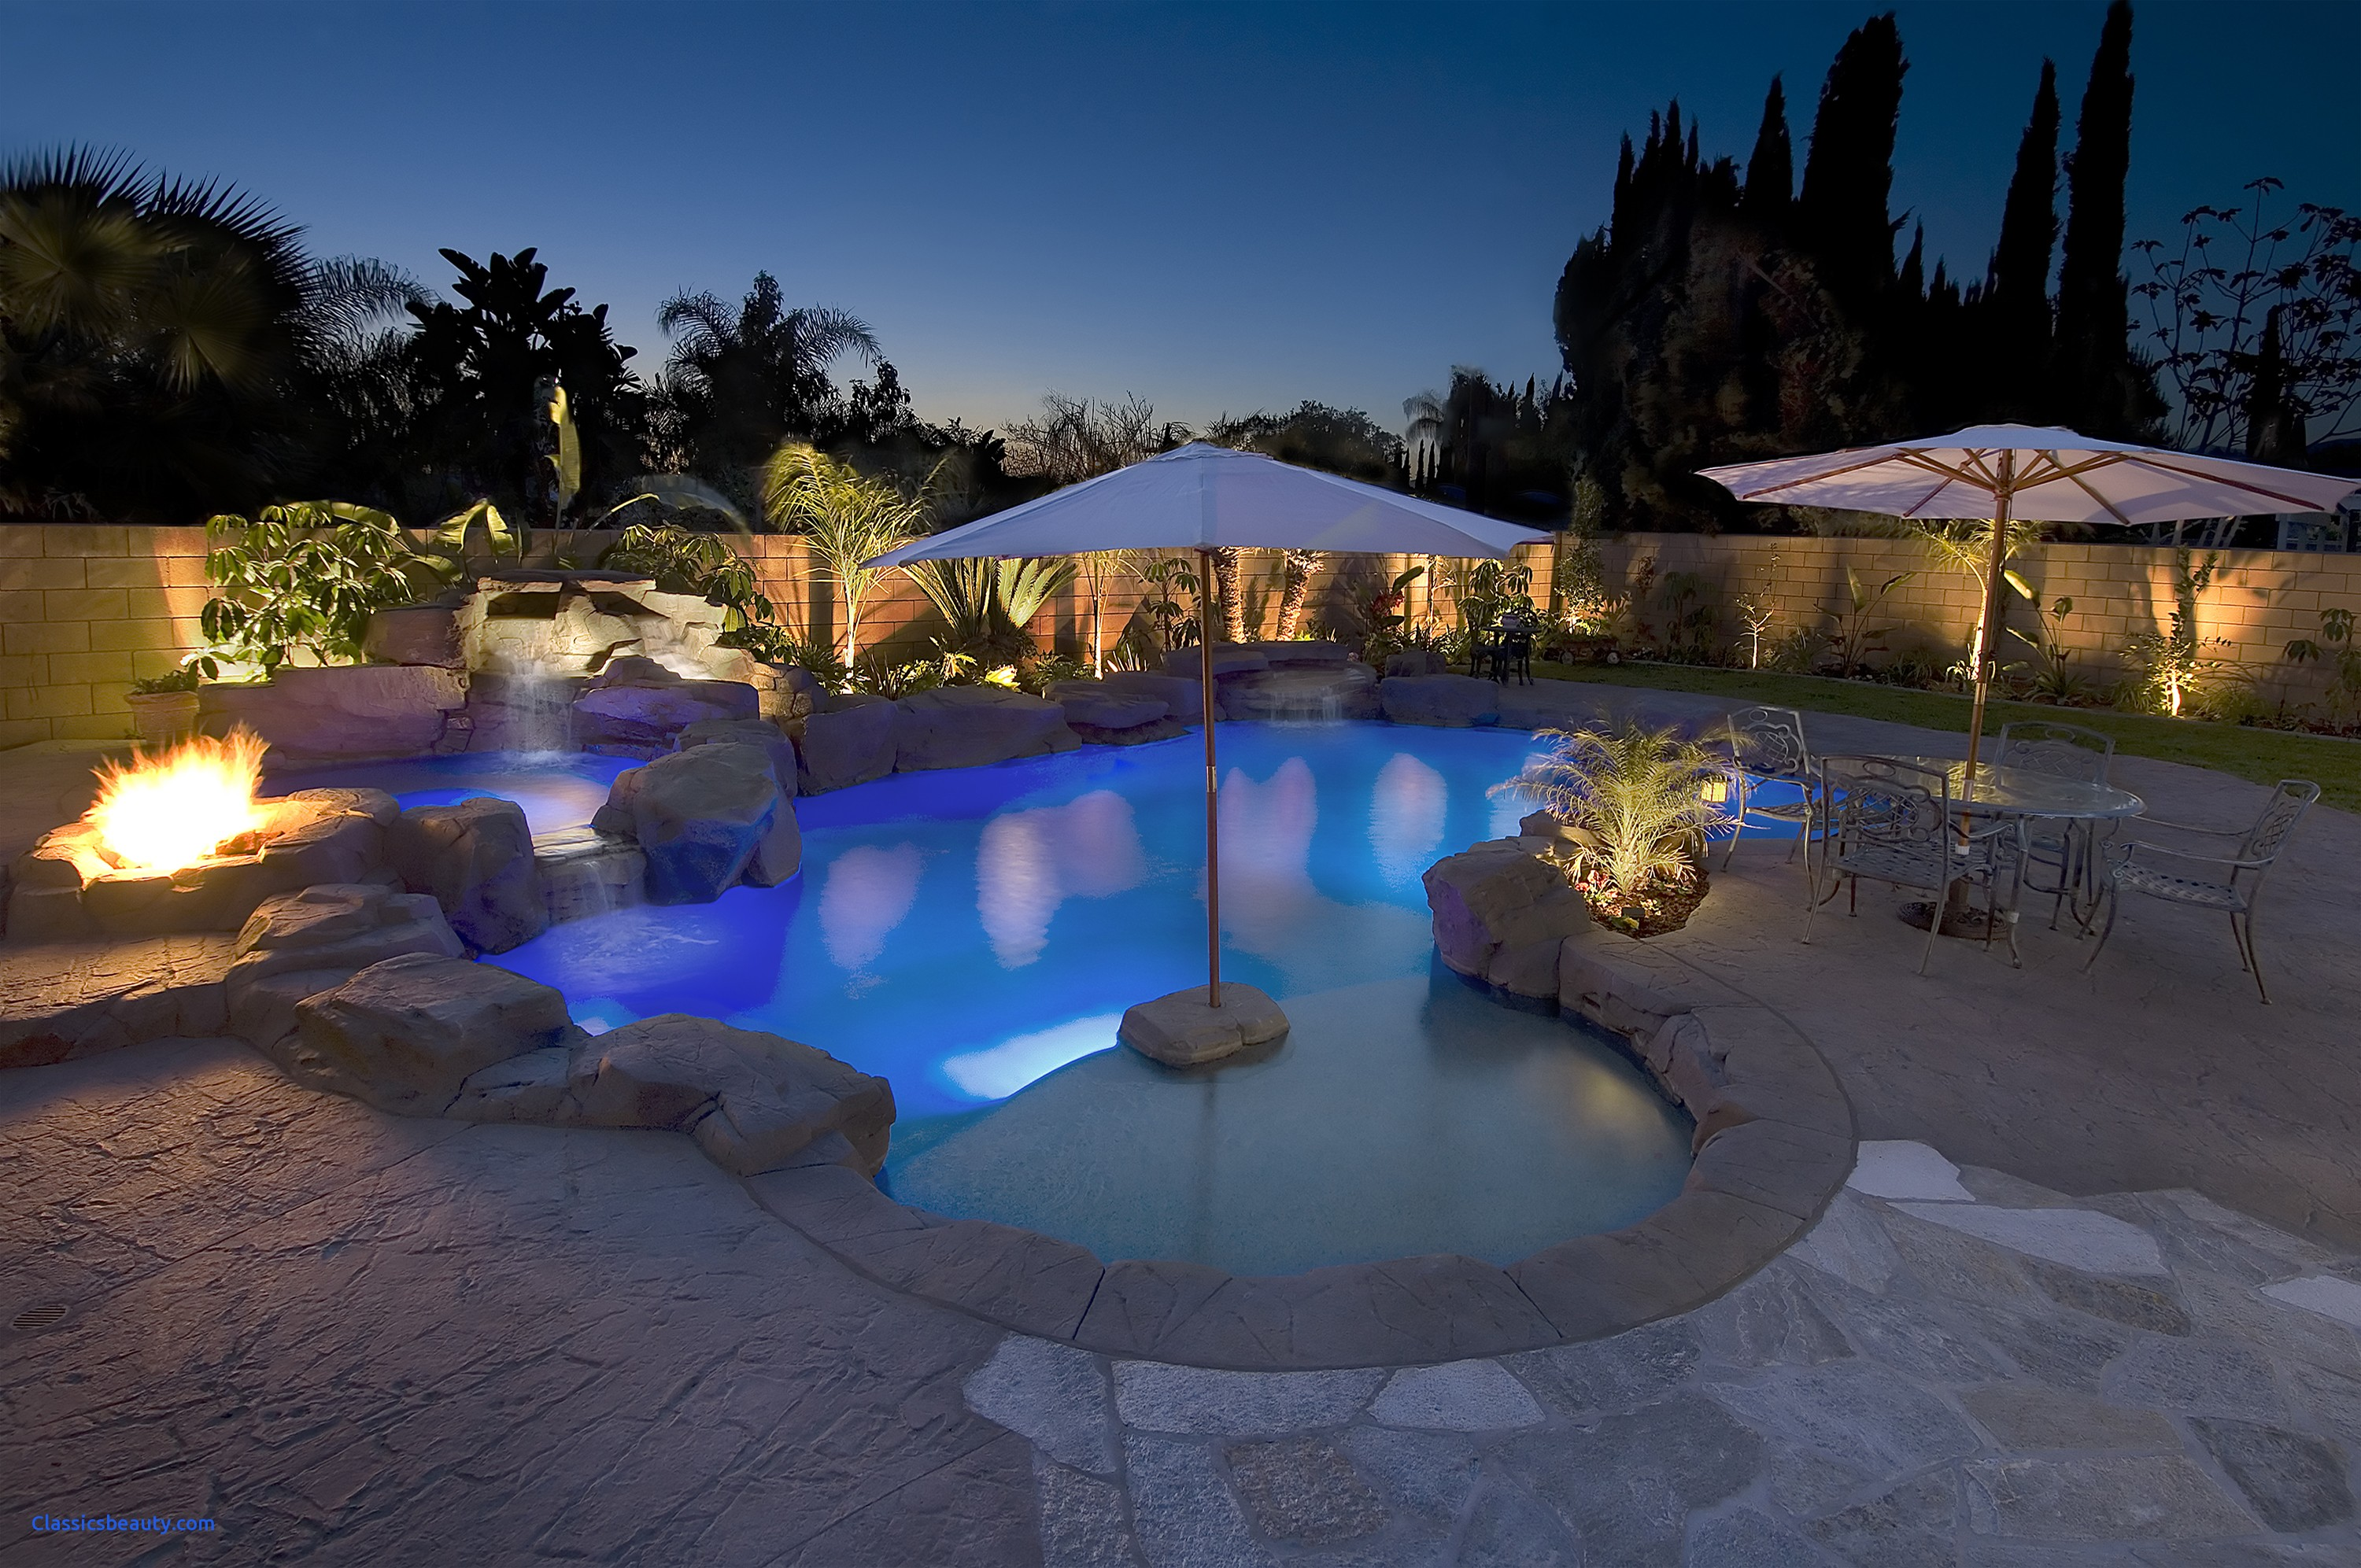 Beautiful Backyards With Pools Inspirational pact Backyards With Pools 119 Small Backyard Pools Toronto A